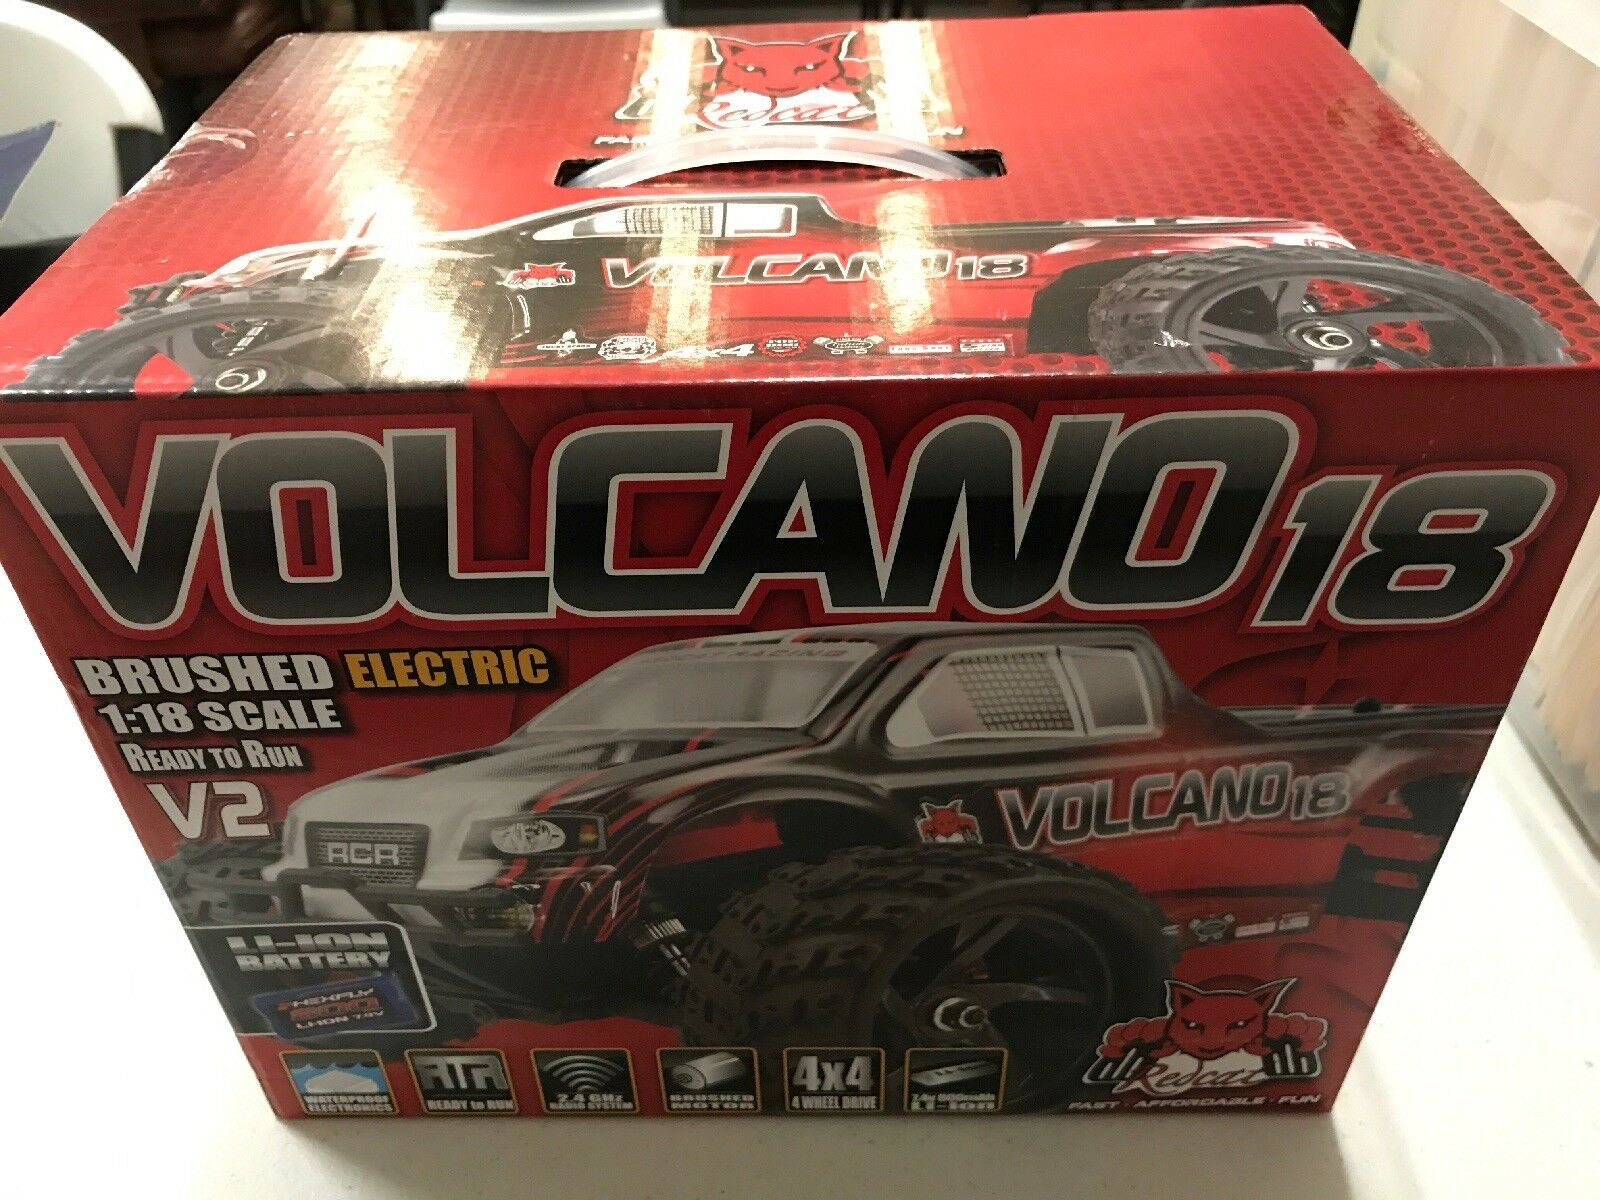 rossocat Volcano 18 Brushed Electric 1 18 Scale V2